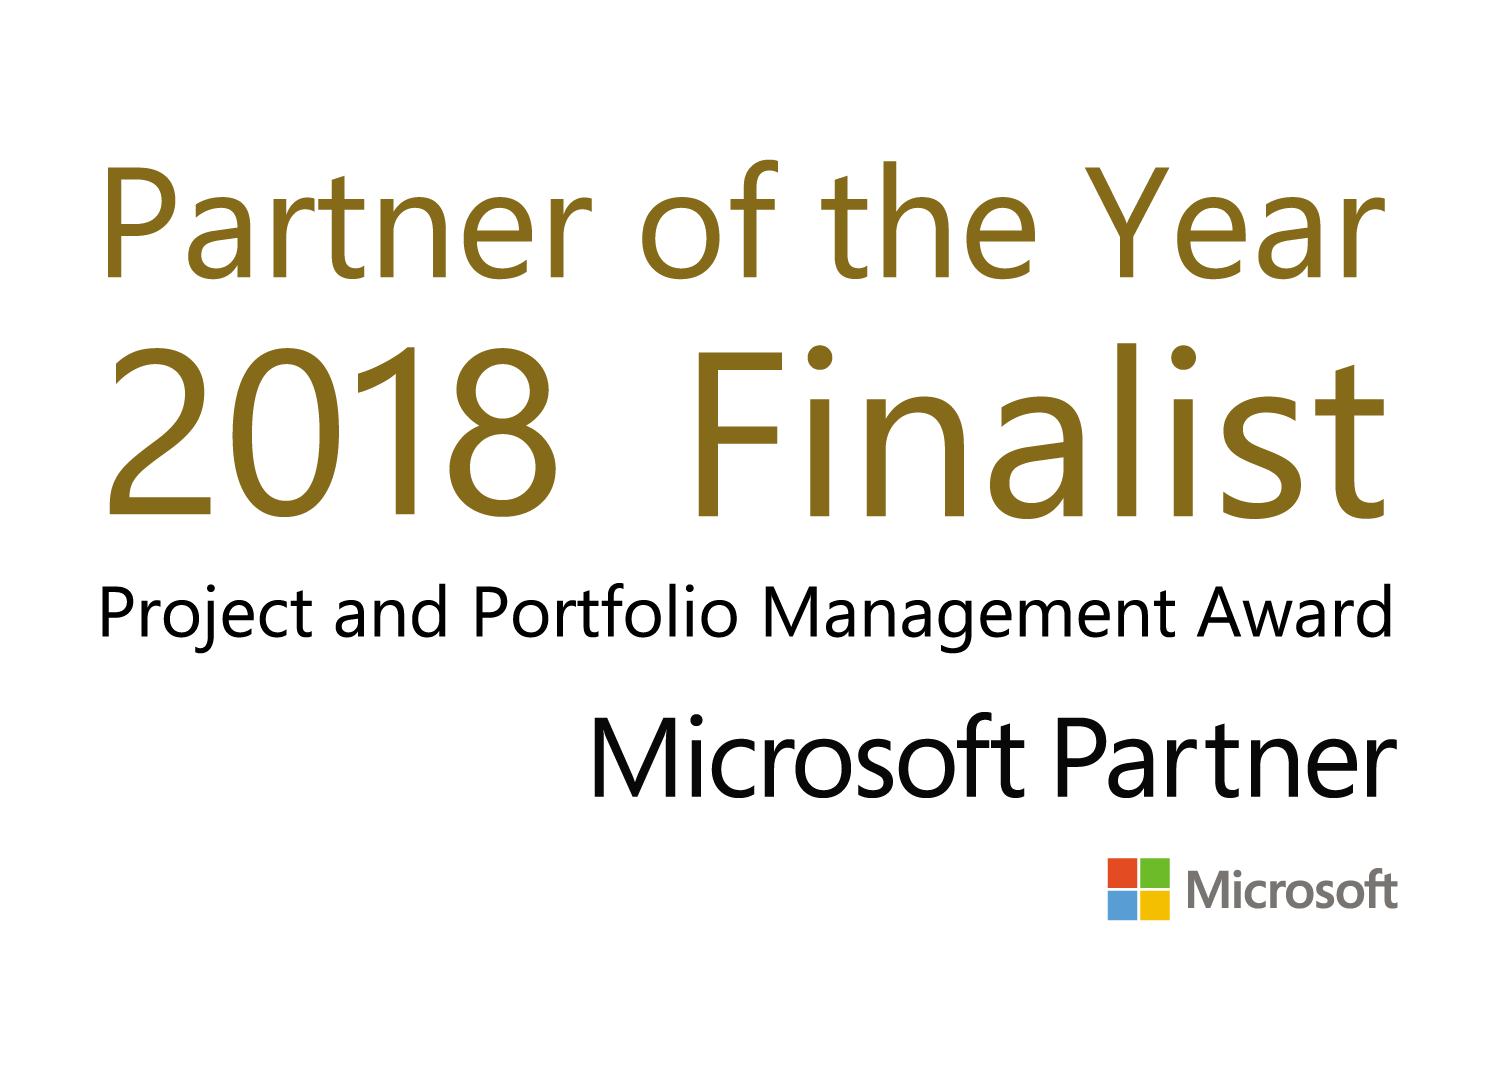 Microsoft Partner of the year Finalist 2018